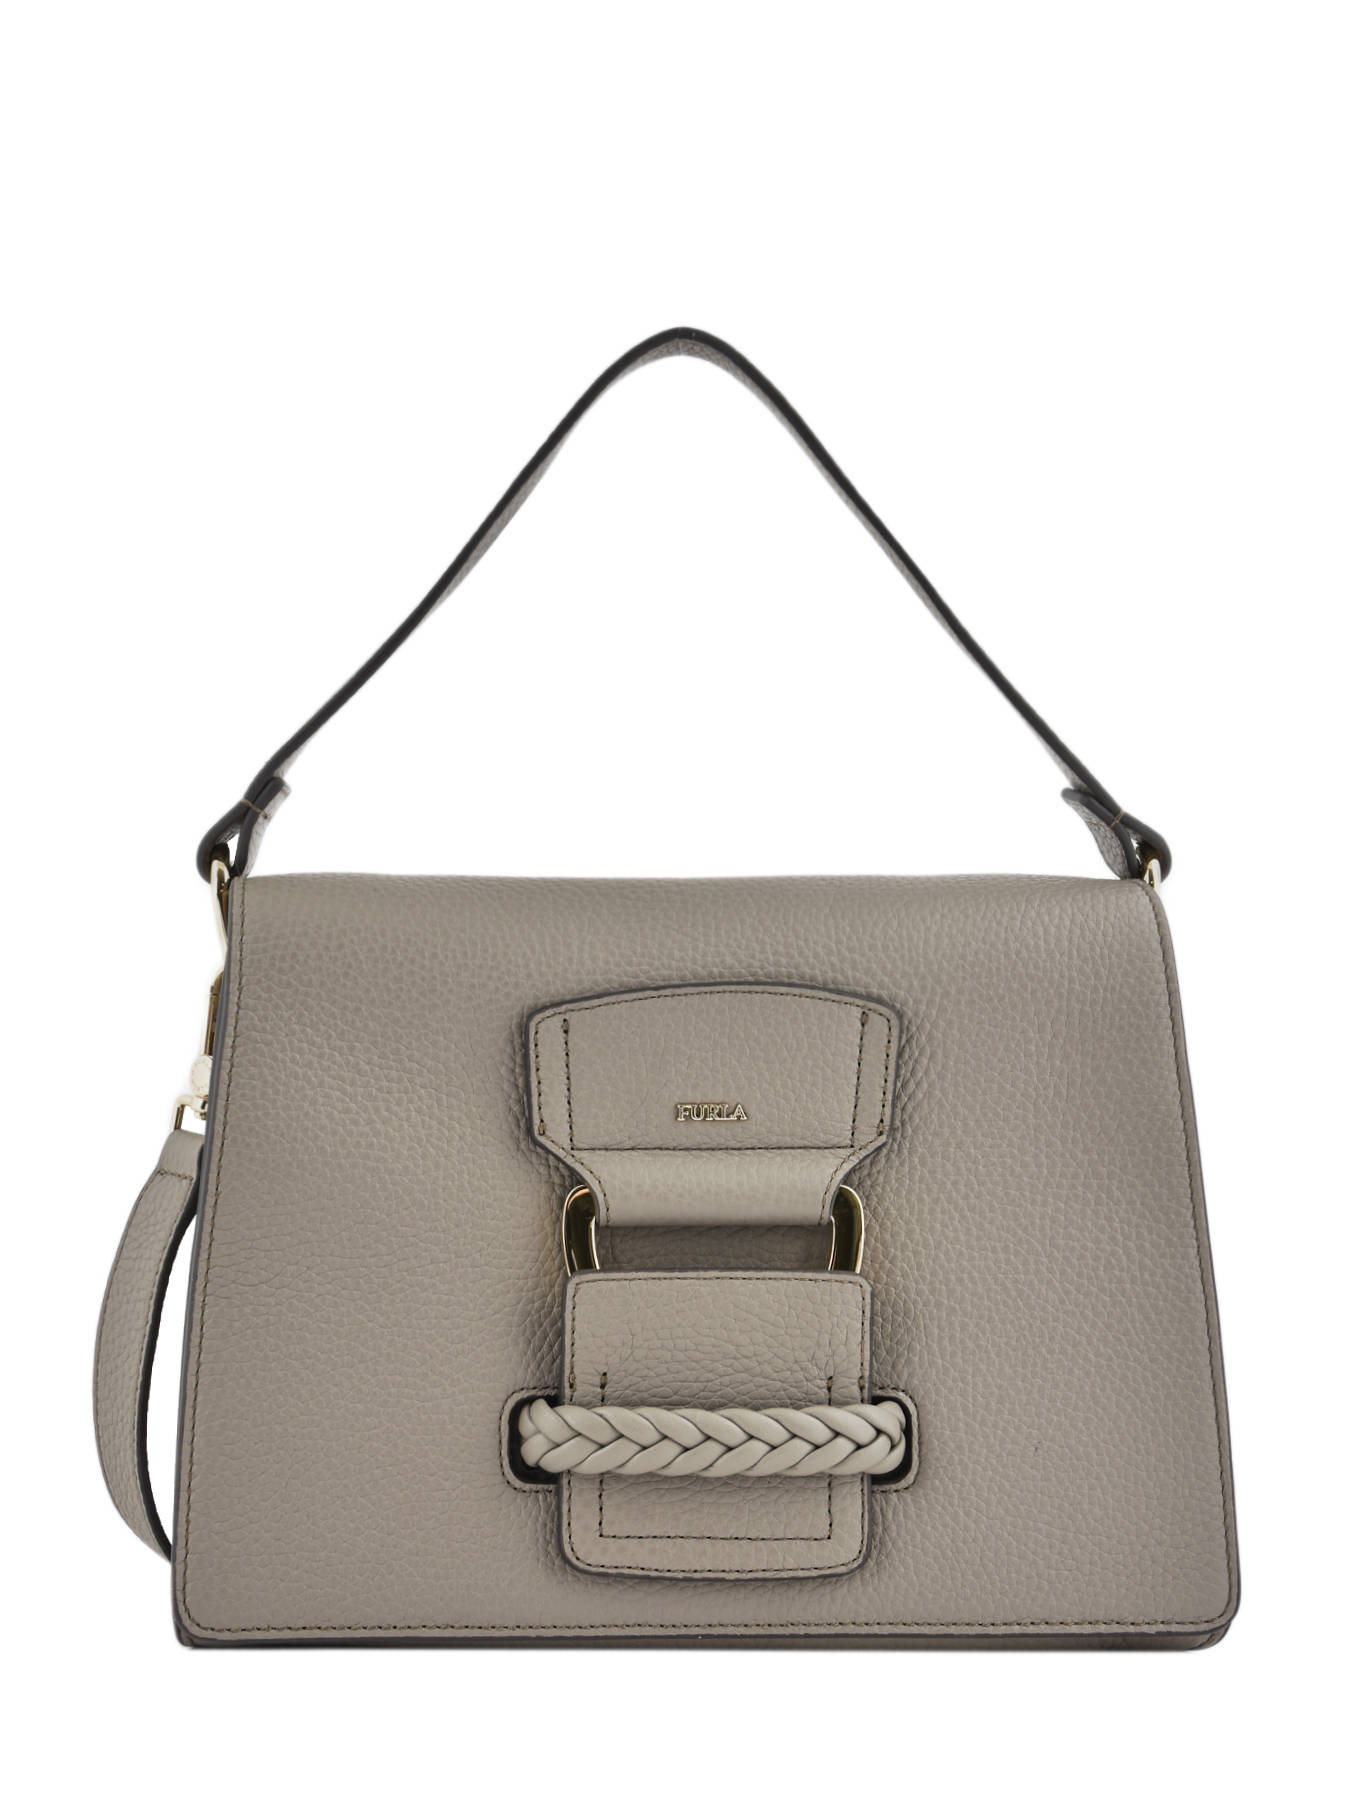 bc0d61a57cee ... Crossbody Bag Rialto Leather Furla Gray rialto RIA-BND1 ...